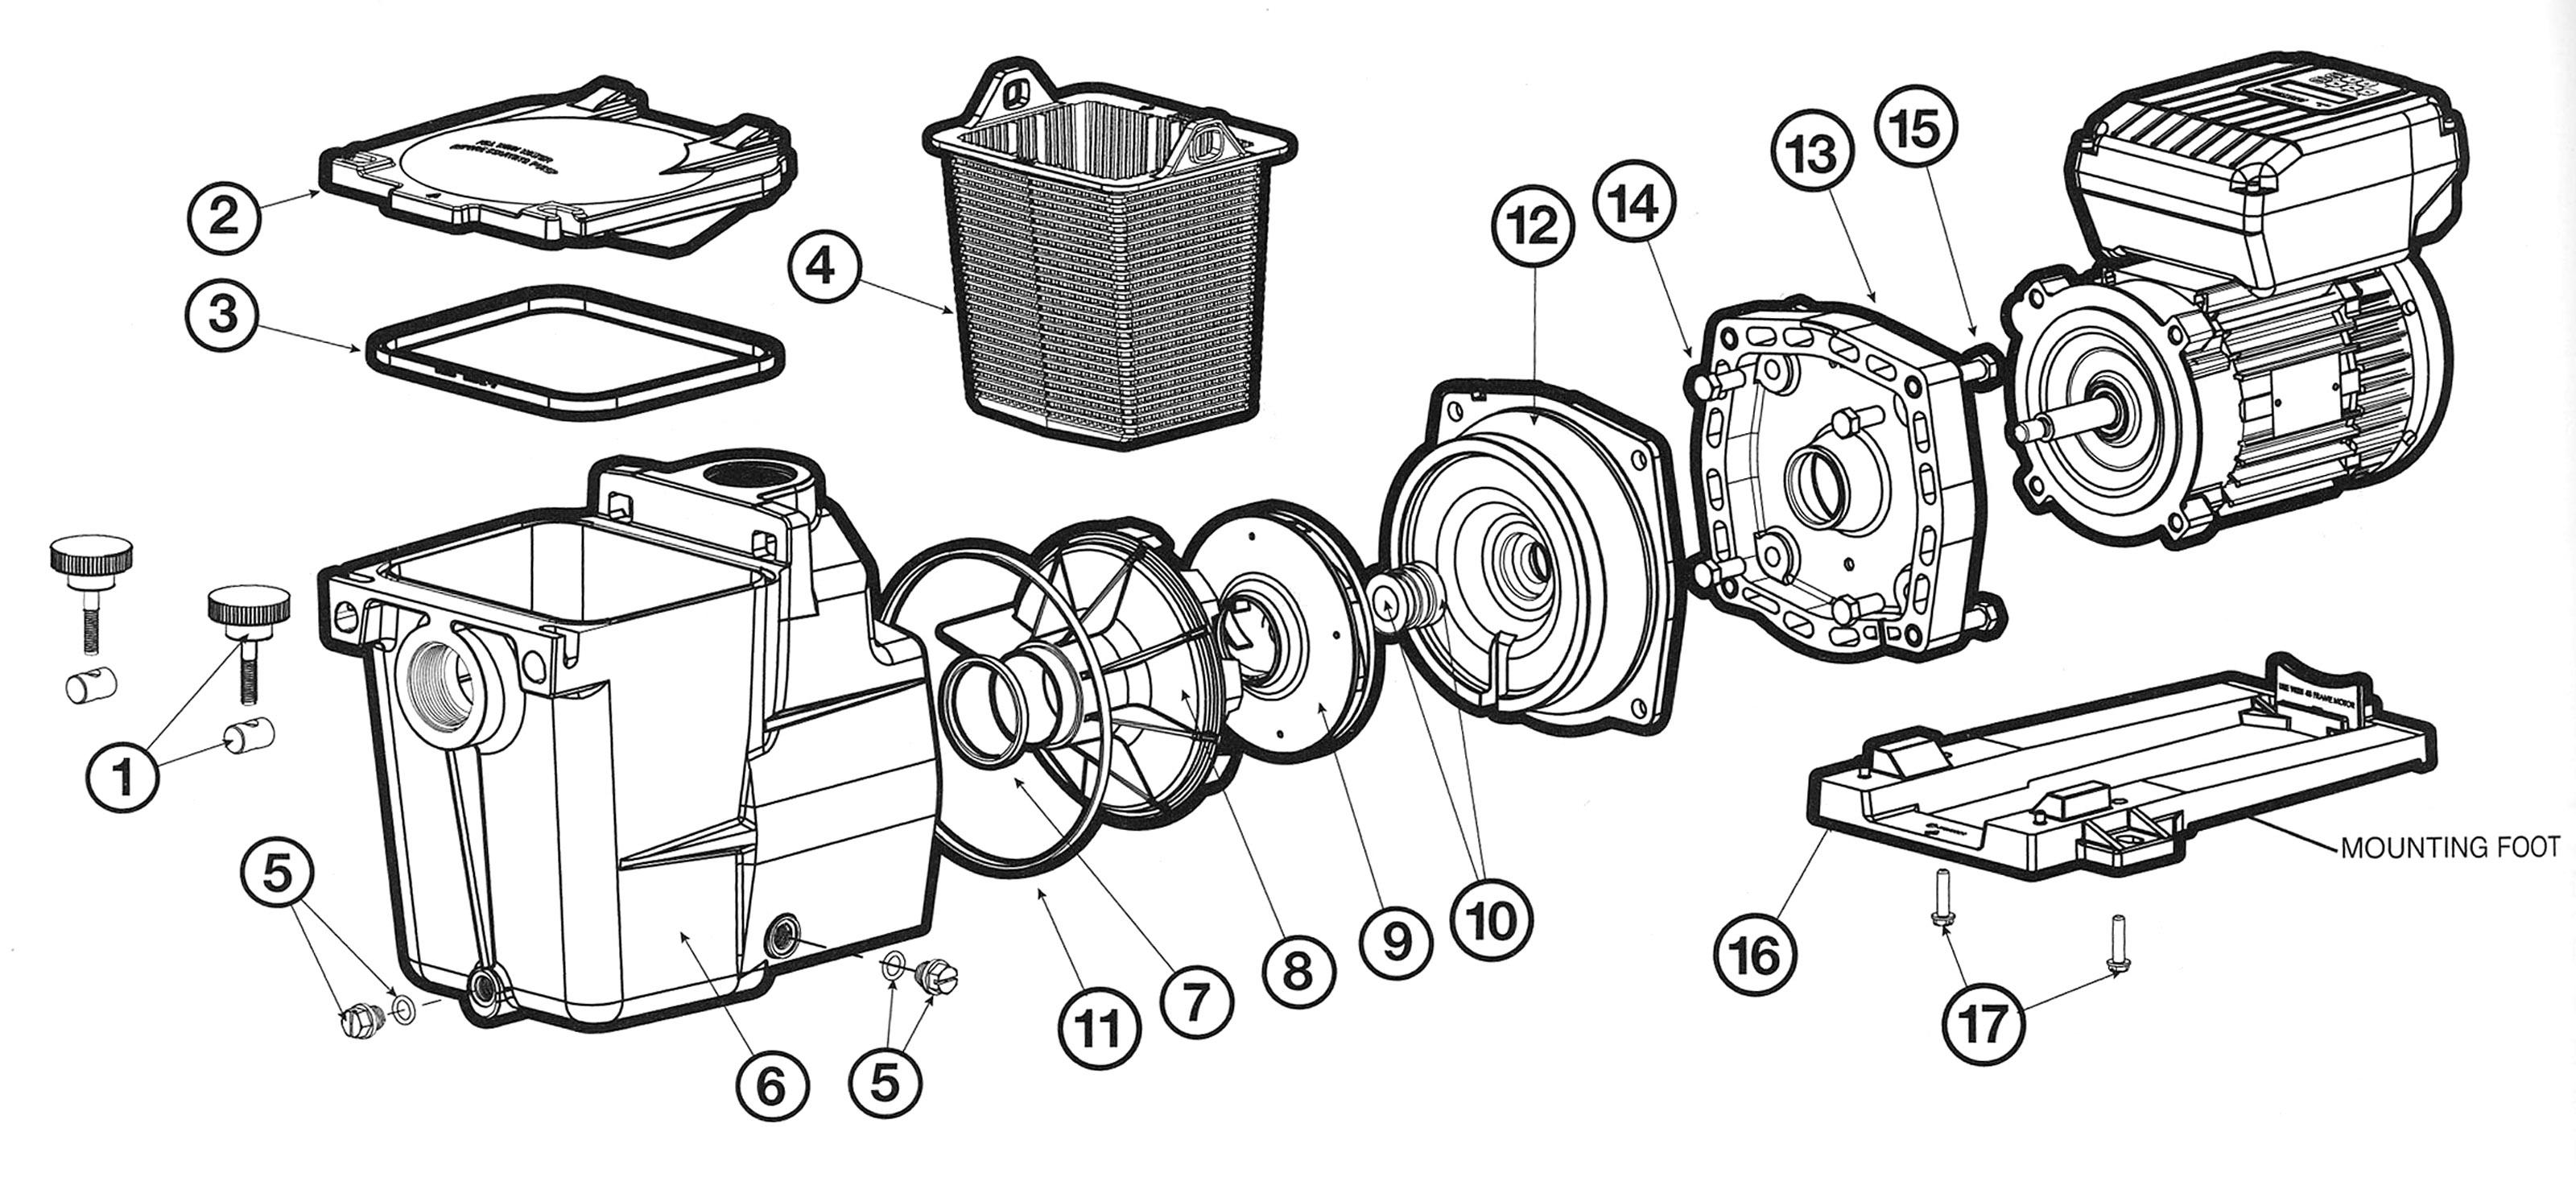 jandy valve parts diagram